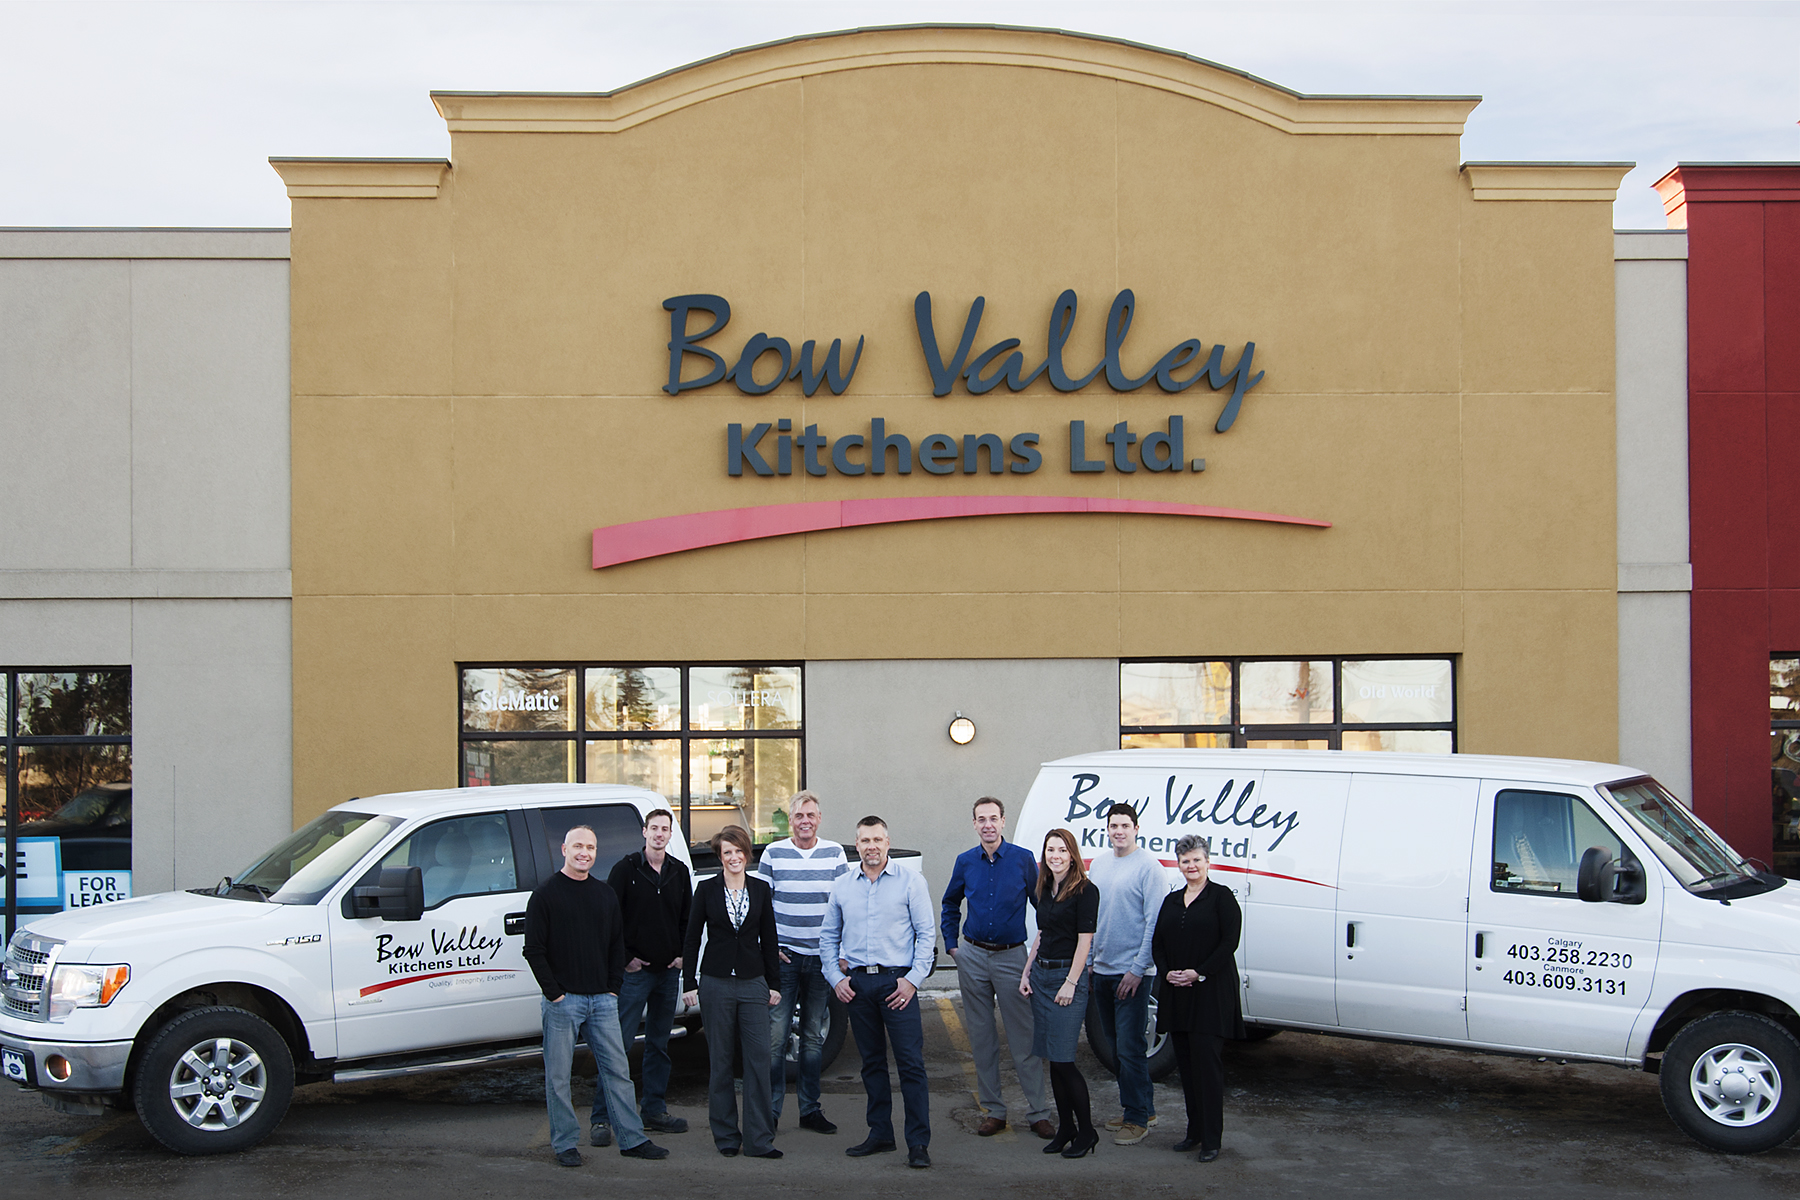 Corporate Portraits; Bow Valley Kitchen Ltd.